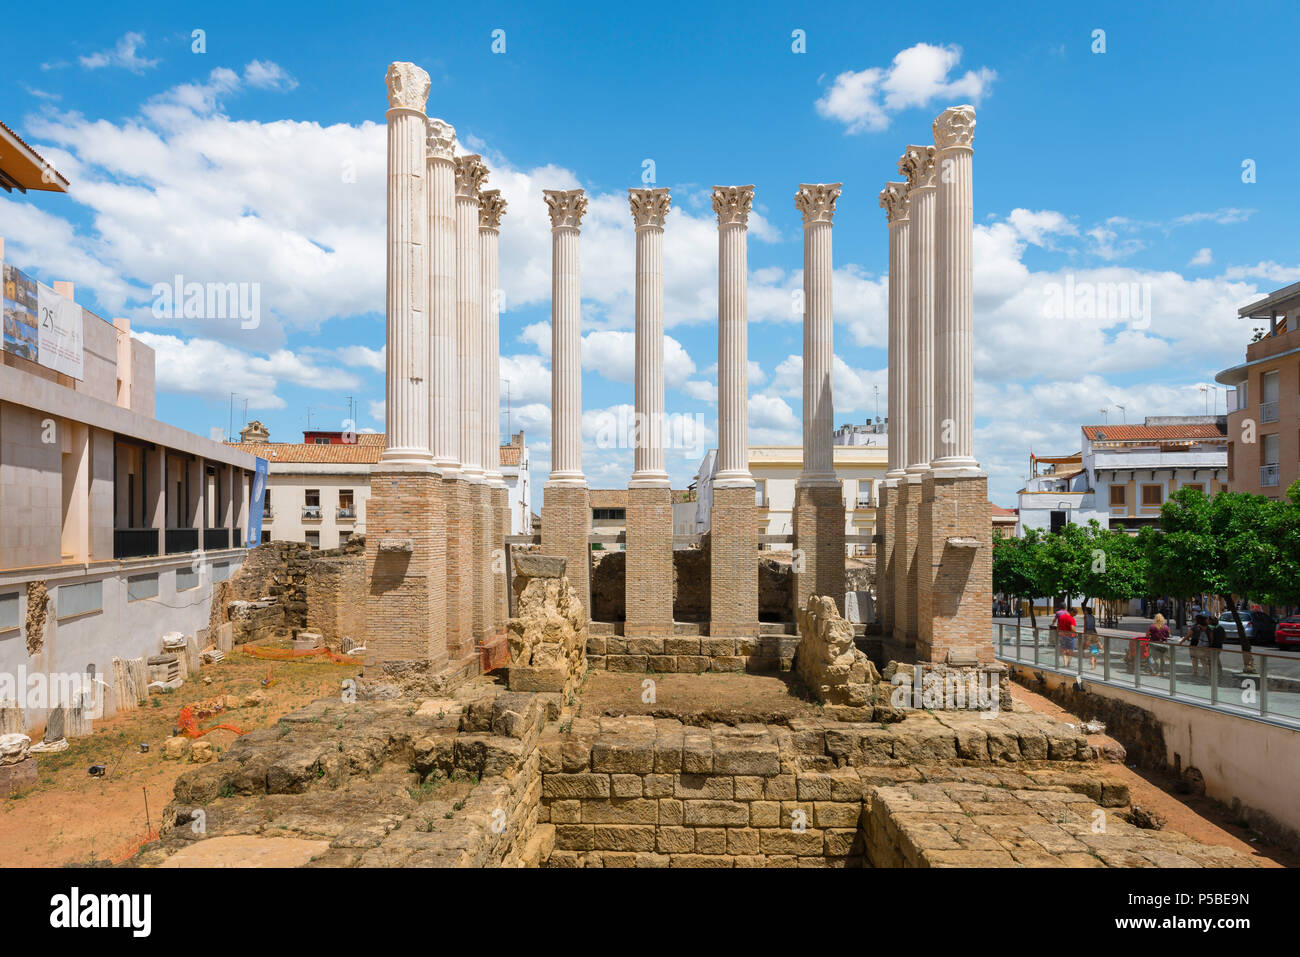 Cordoba Roman temple, view of reconstructed columns sited above the excavation of an ancient Roman temple in the center of Cordoba, Andalucia, Spain. - Stock Image